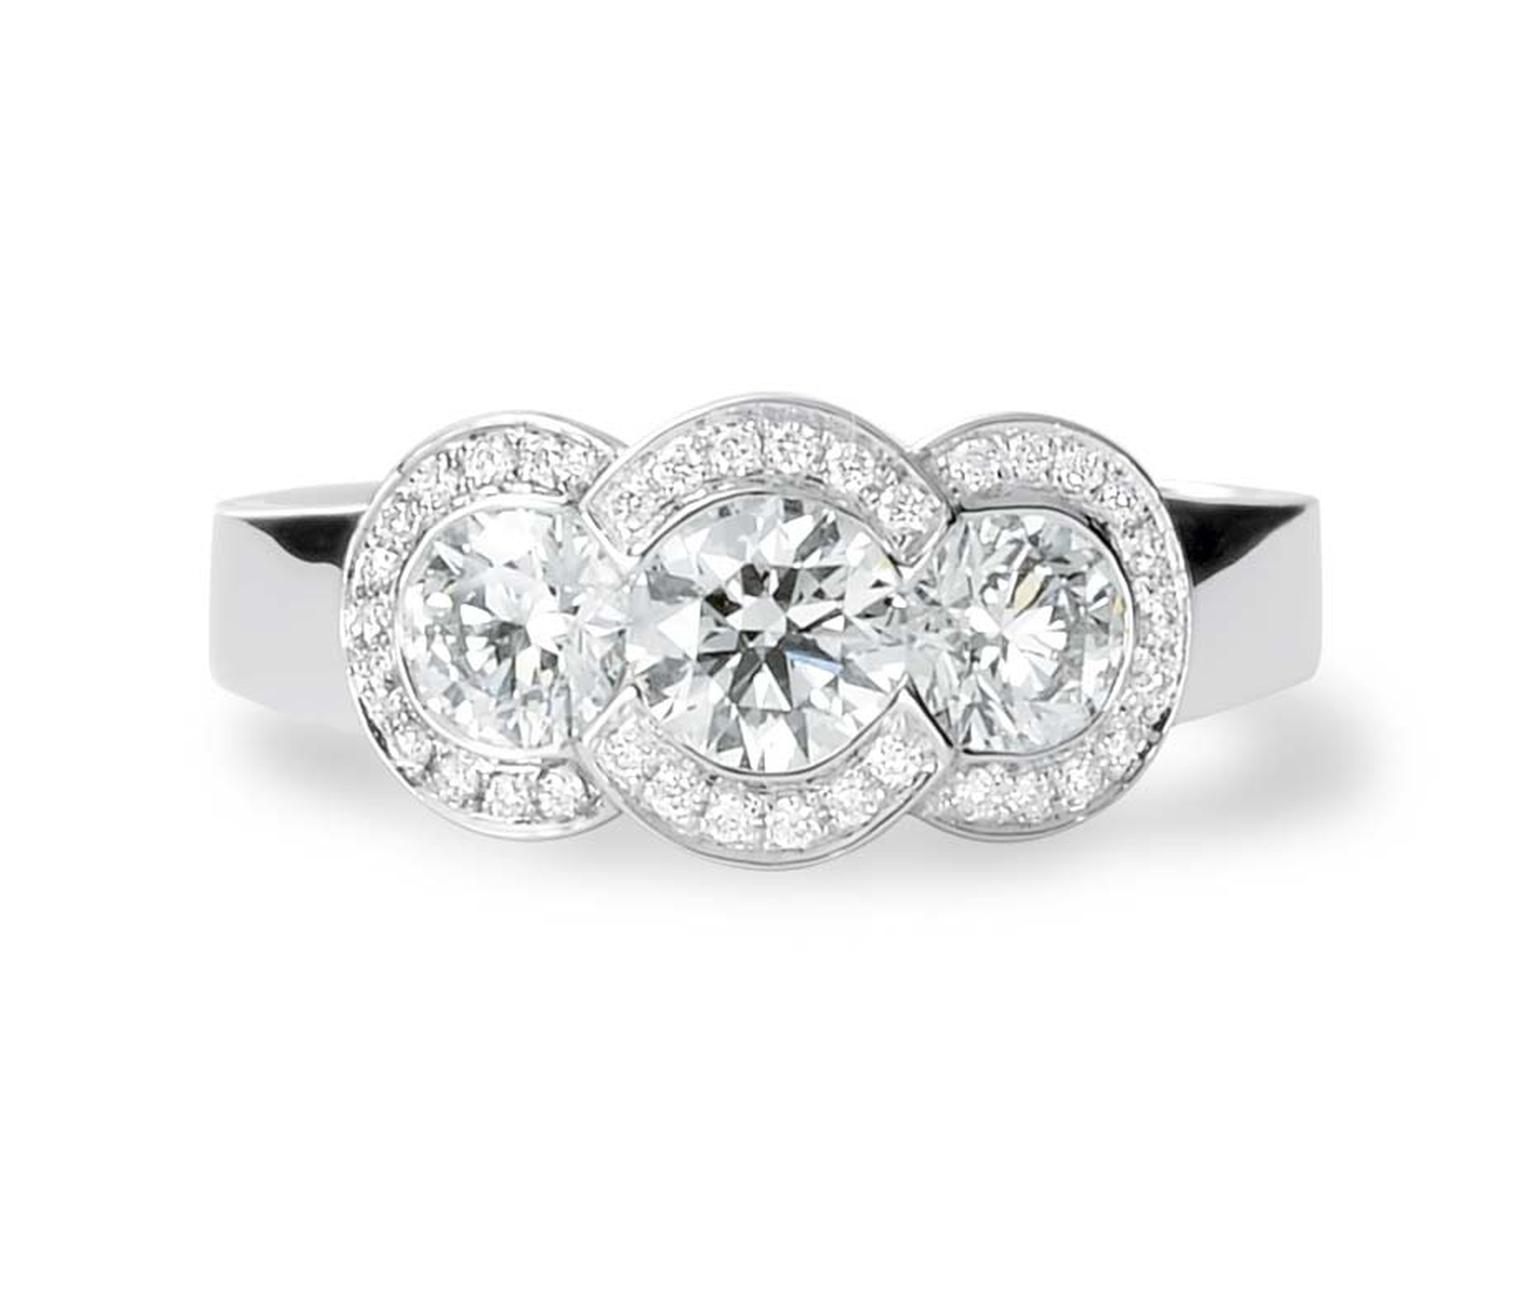 David Robinson's three stone engagement ring is set with three solitaires diamonds in a halo-style surround.